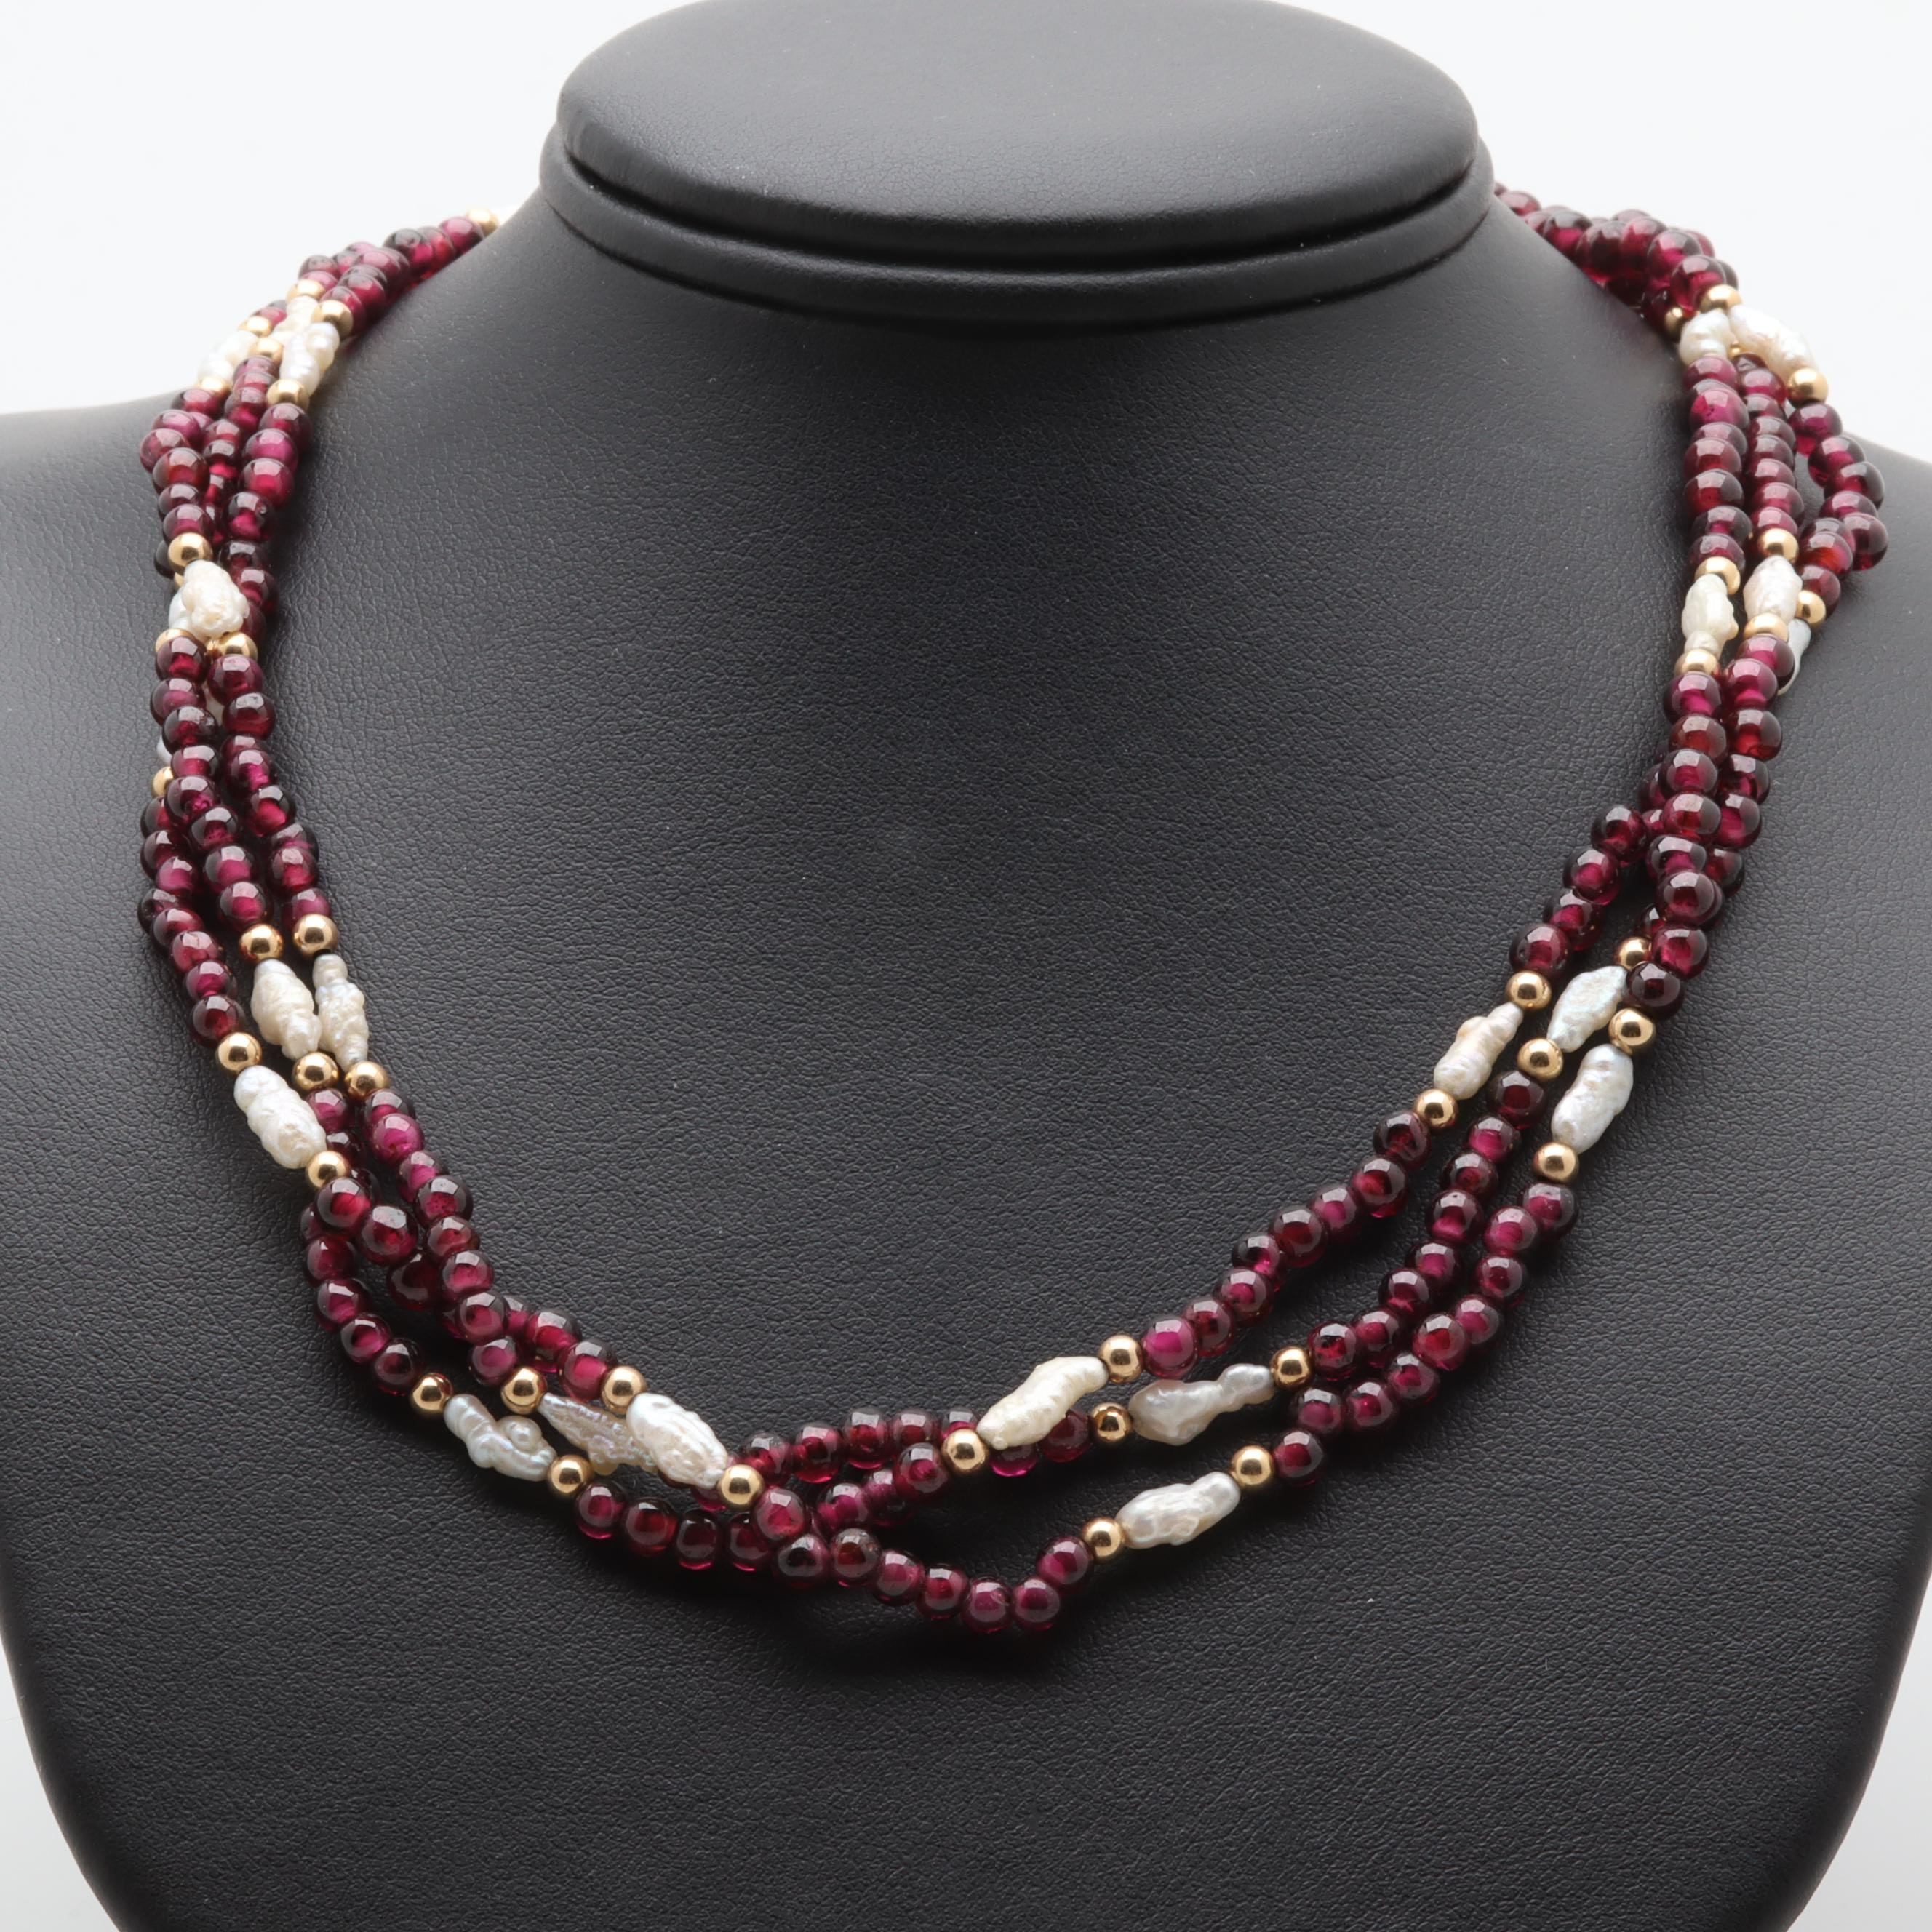 14K Yellow Gold Garnet and Cultured Pearl Multi-Strand Beaded Necklace